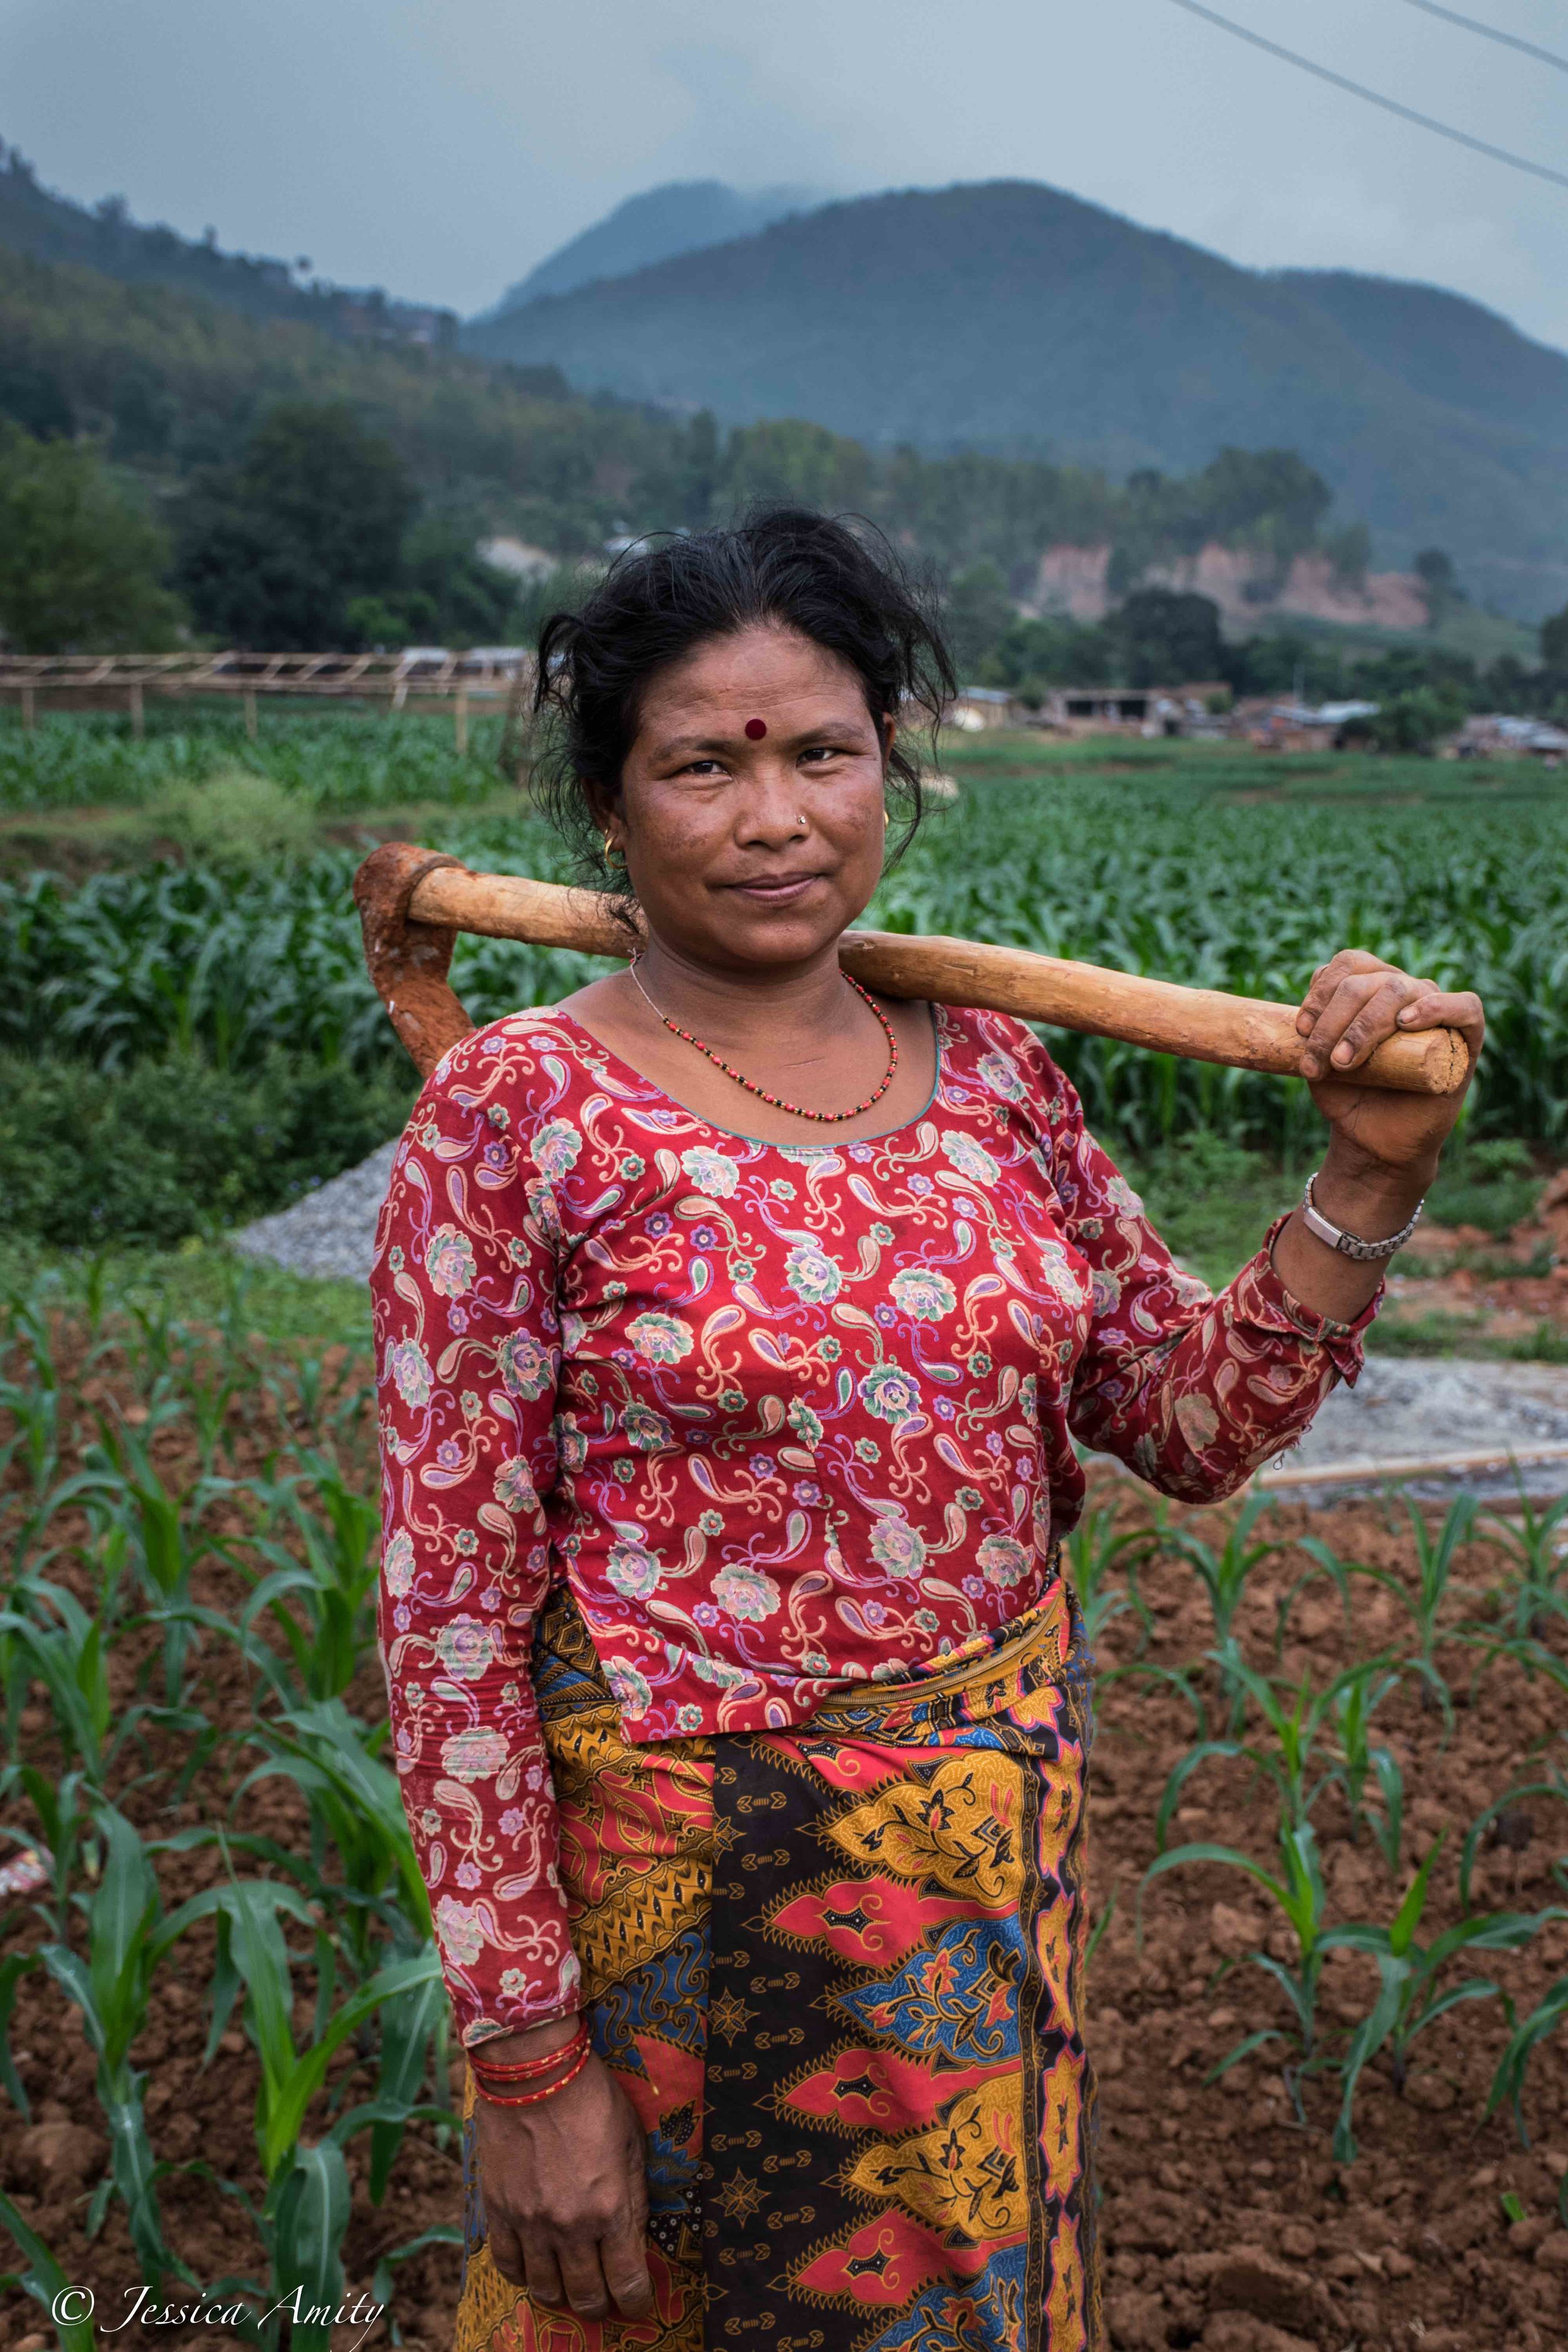 Nepal is an agricultural country. Majority of the people and communities in Nepal are dependent on agriculture to provide them with crops and around 80% of the people's occupations are based around agriculture. Rice, wheat, maize and buckwheat are the major staple food crops.